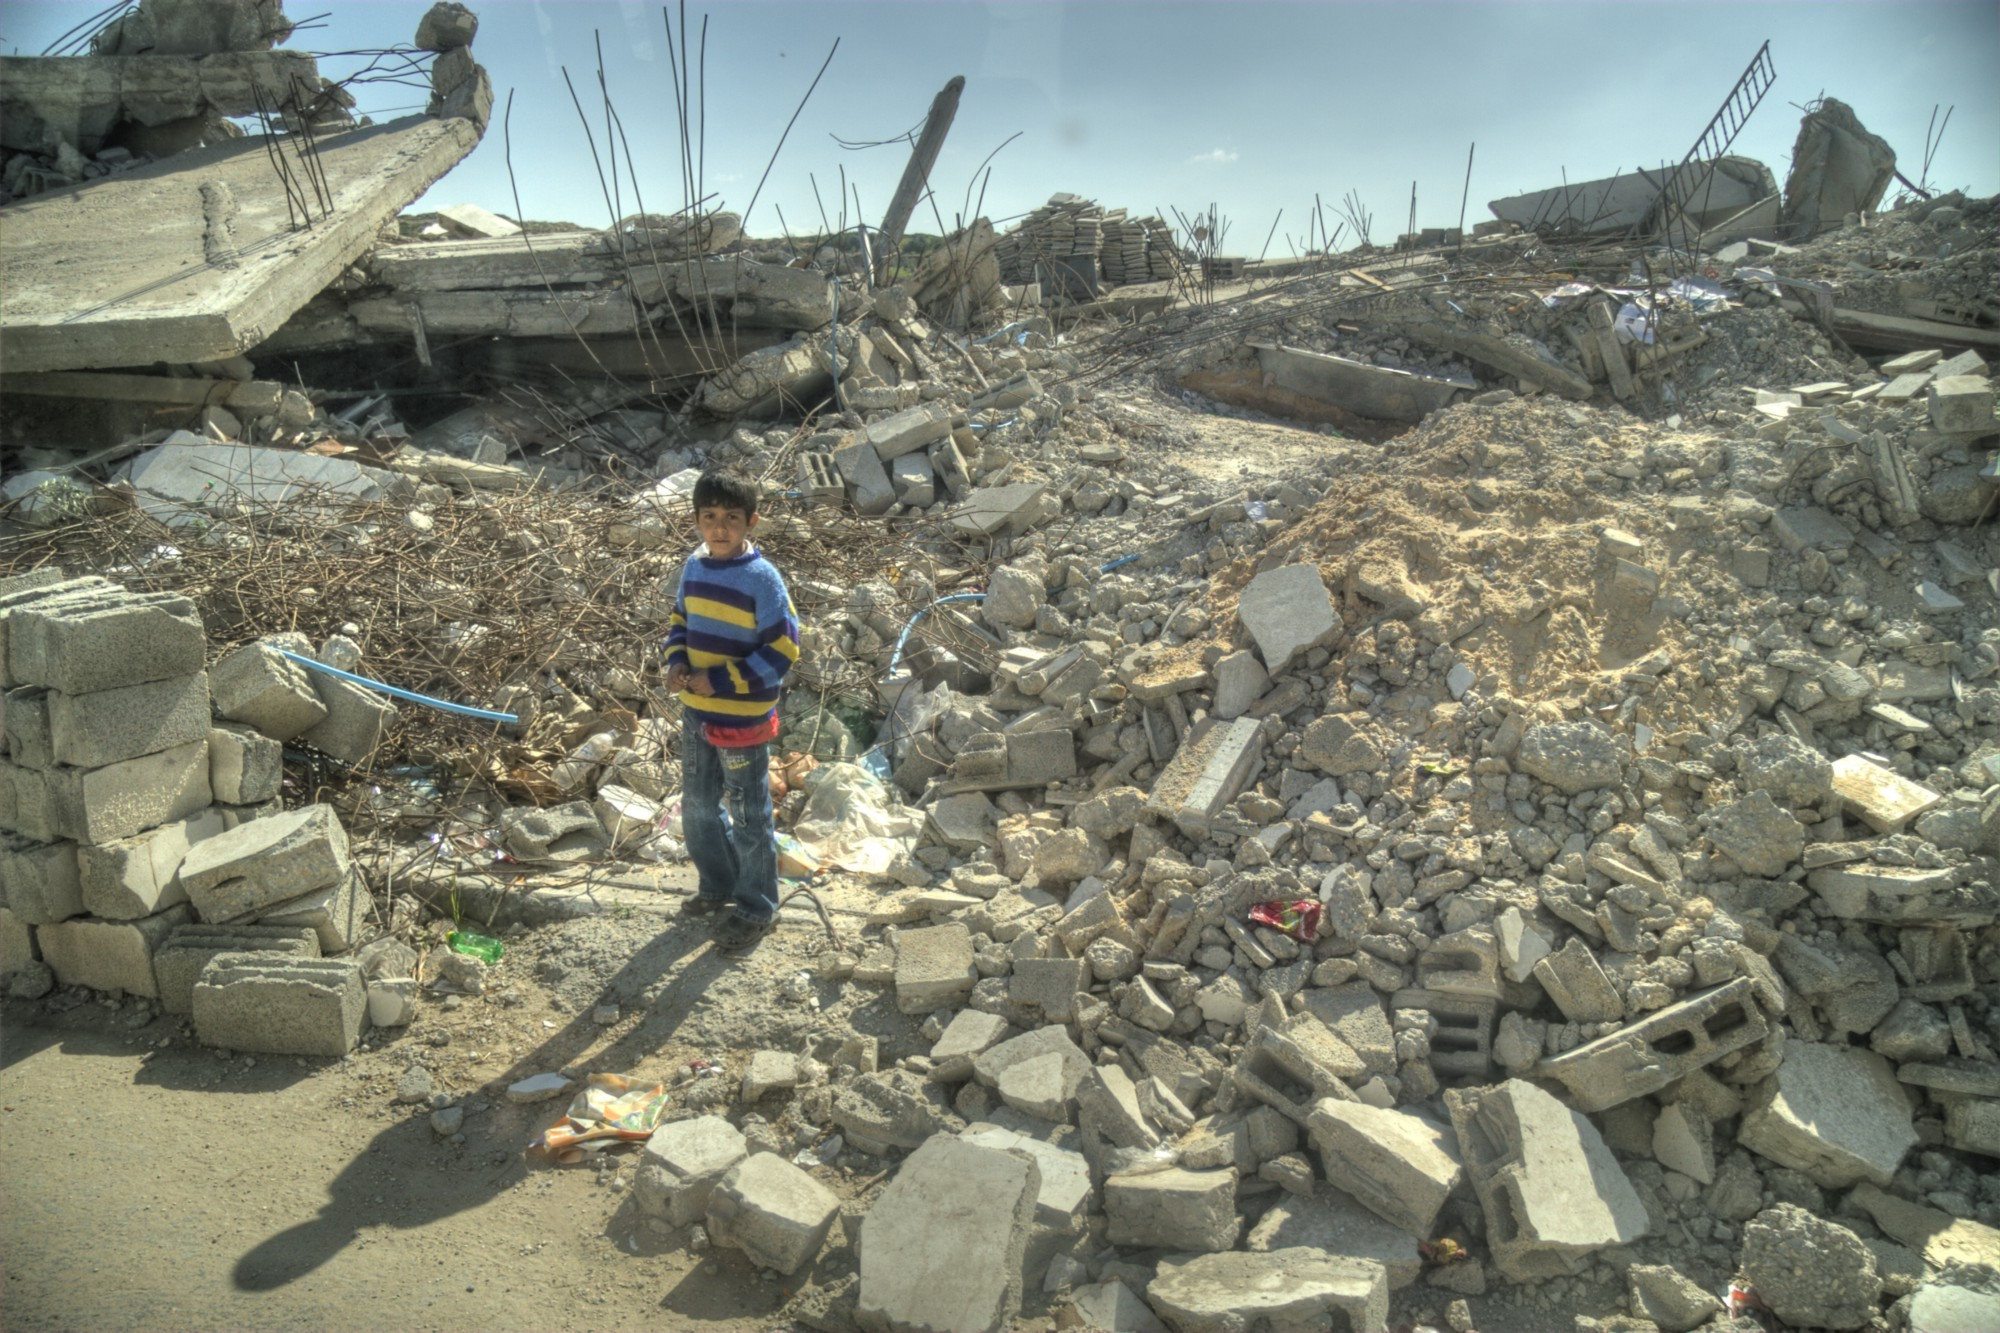 70 years of Nakba: Palestinian voices on the continuing catastrophe